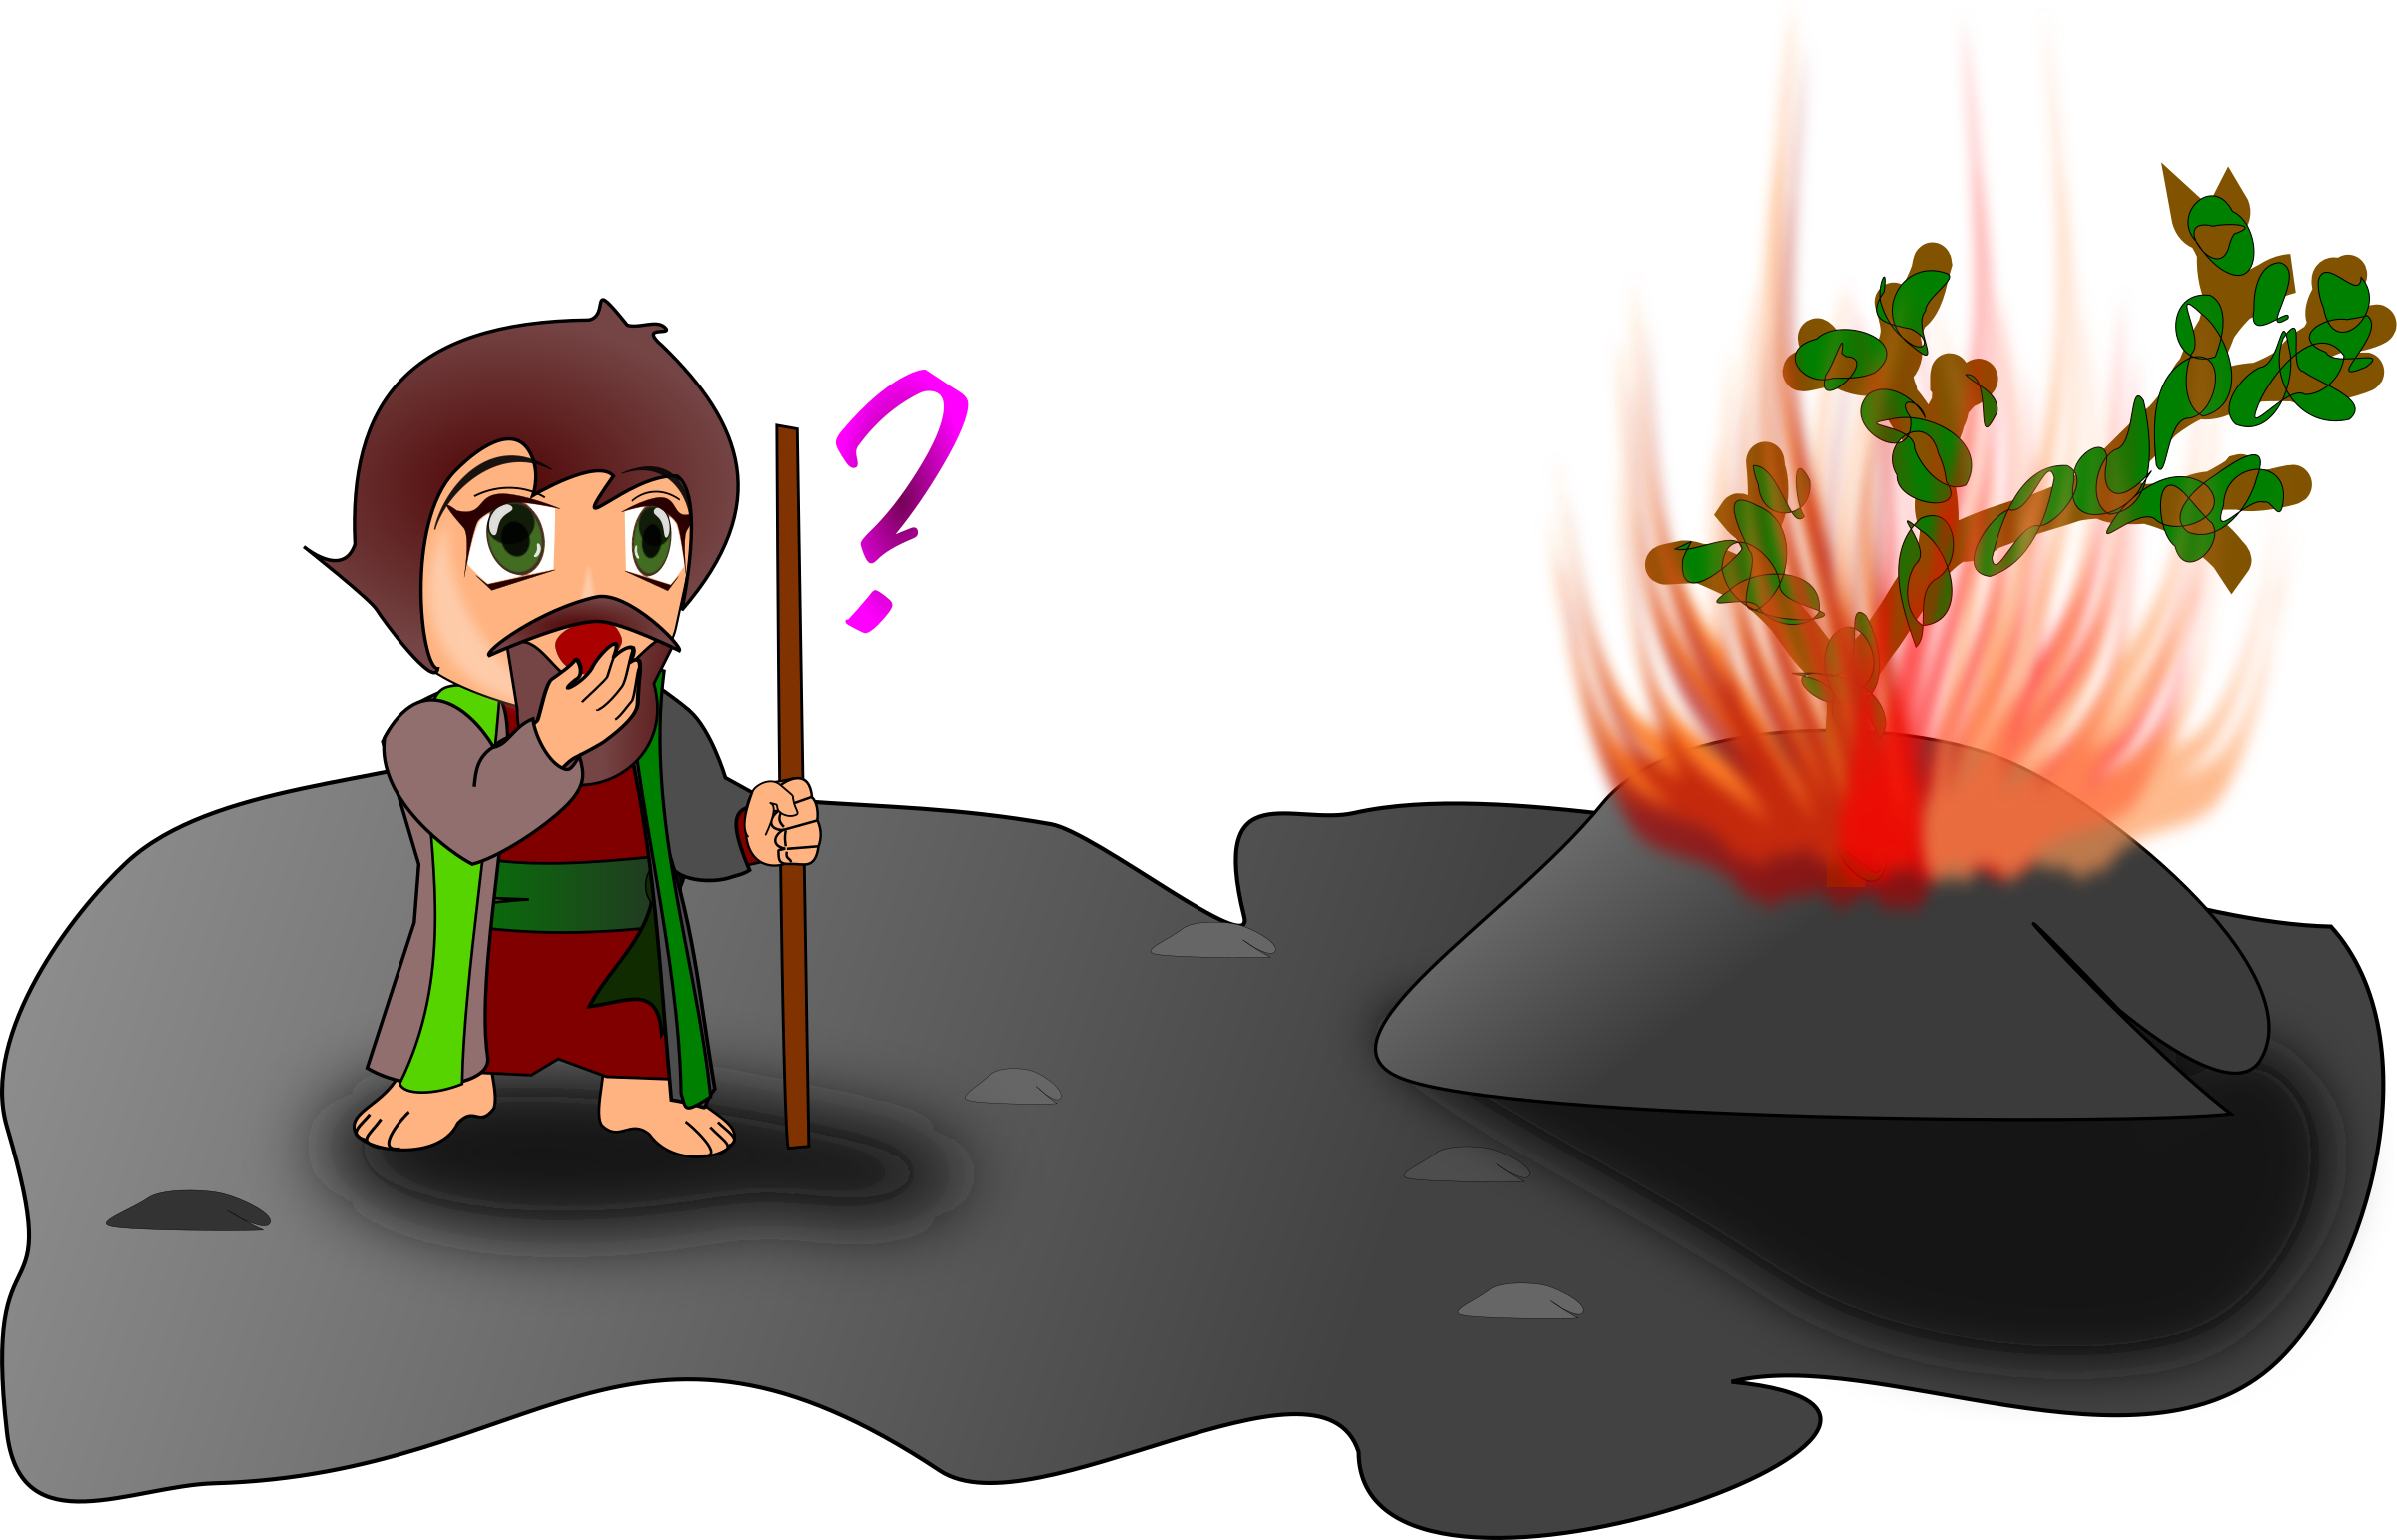 moses and the burning bush (chibi version) by wsnaccad